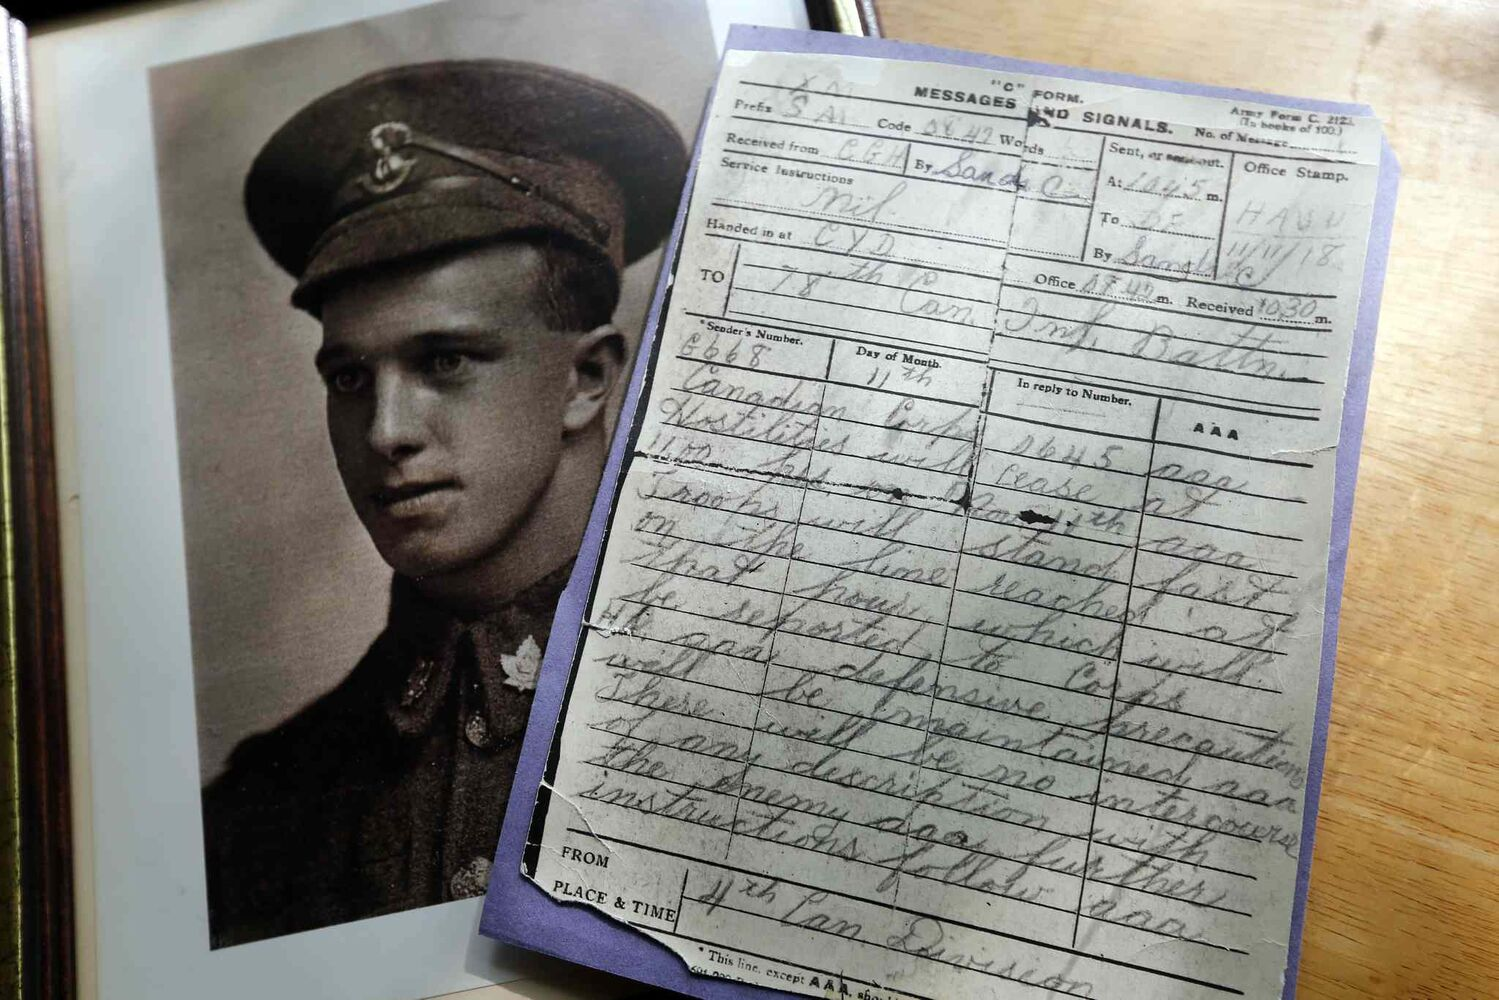 Clayton Sands was a signaler in the First World War and was on duty when the message came out that the war would end at 11 a.m. on Nov. 11, 1918. He kept his original signal. (Ken Gigliotti / Winnipeg Free Press)